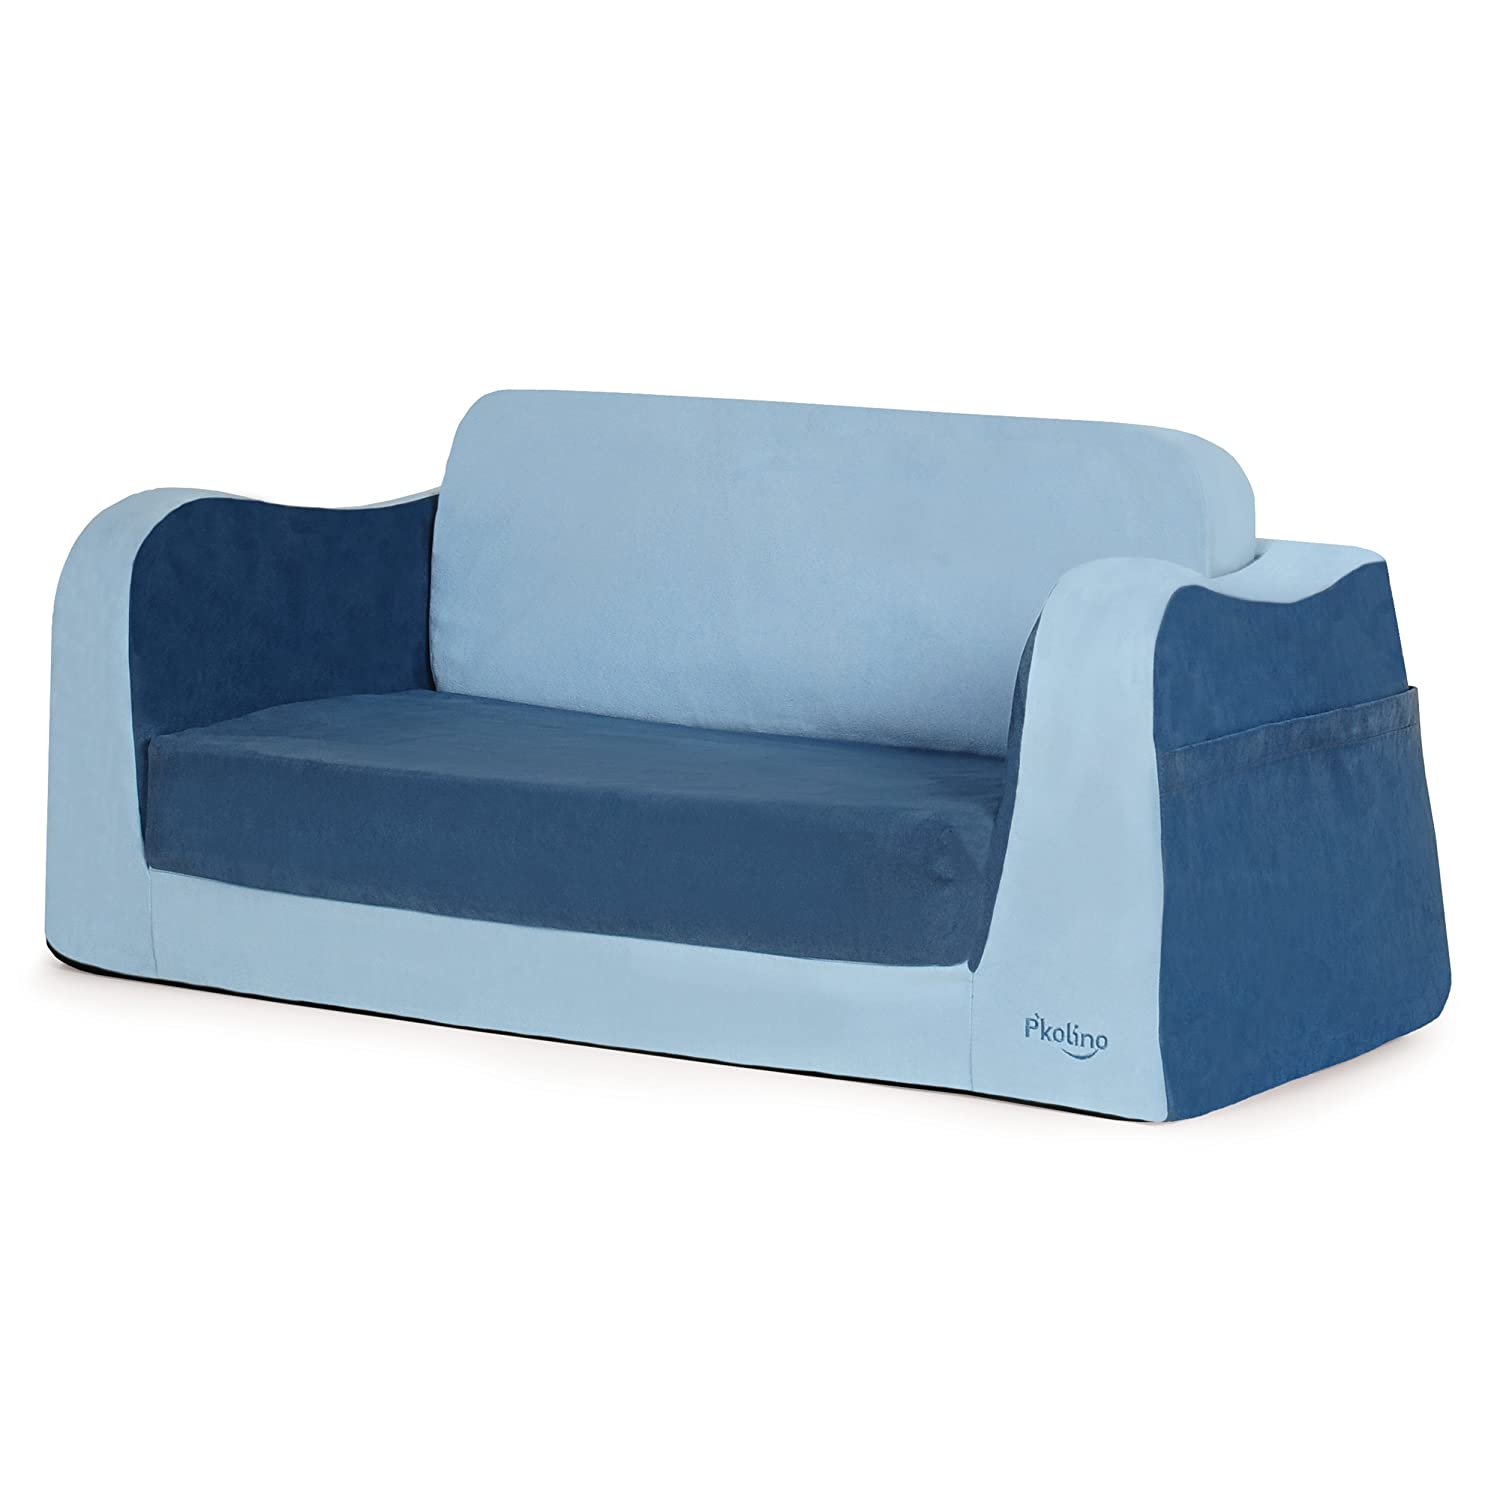 Amazoncom Pkolino Little Sofa Sleeper in Blue Baby